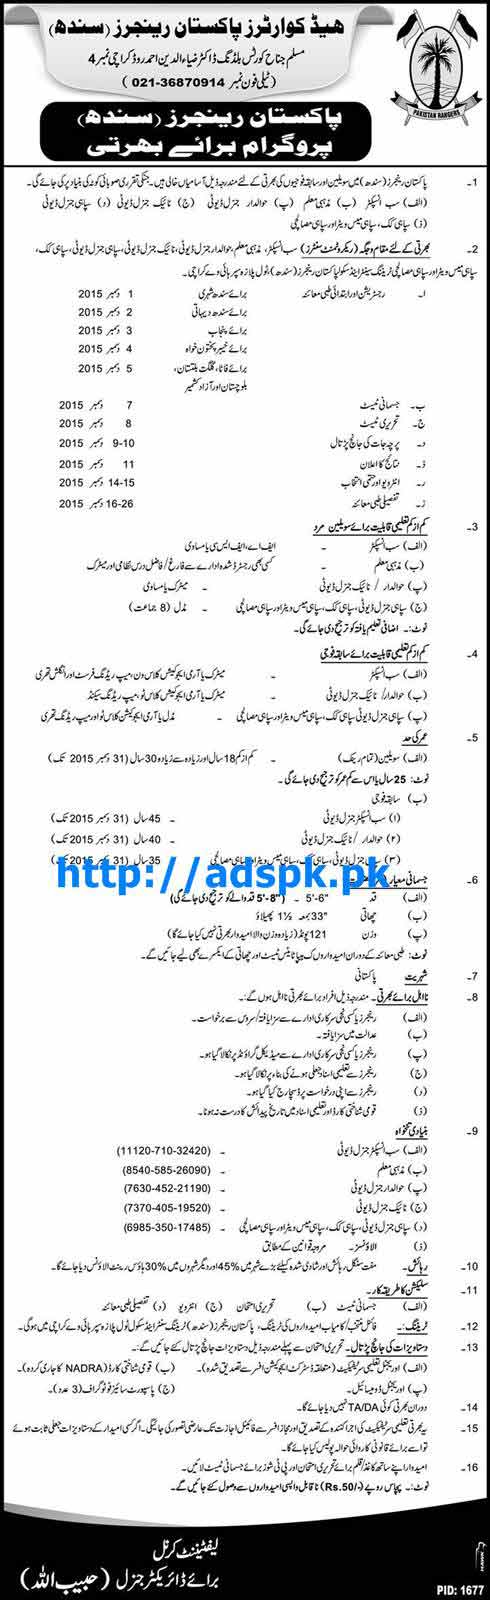 Latest Jobs of Pakistan Rangers (Sindh) Jobs 2015 Recruitment Program for Civilian & Retired Army Soldiers Jobs of Sub Inspector Religious Teacher Havildar Naik Sepoy Cook Mess Waiter and Sepoy Misalchi Registration Starting from 01-12-2015 Apply Now